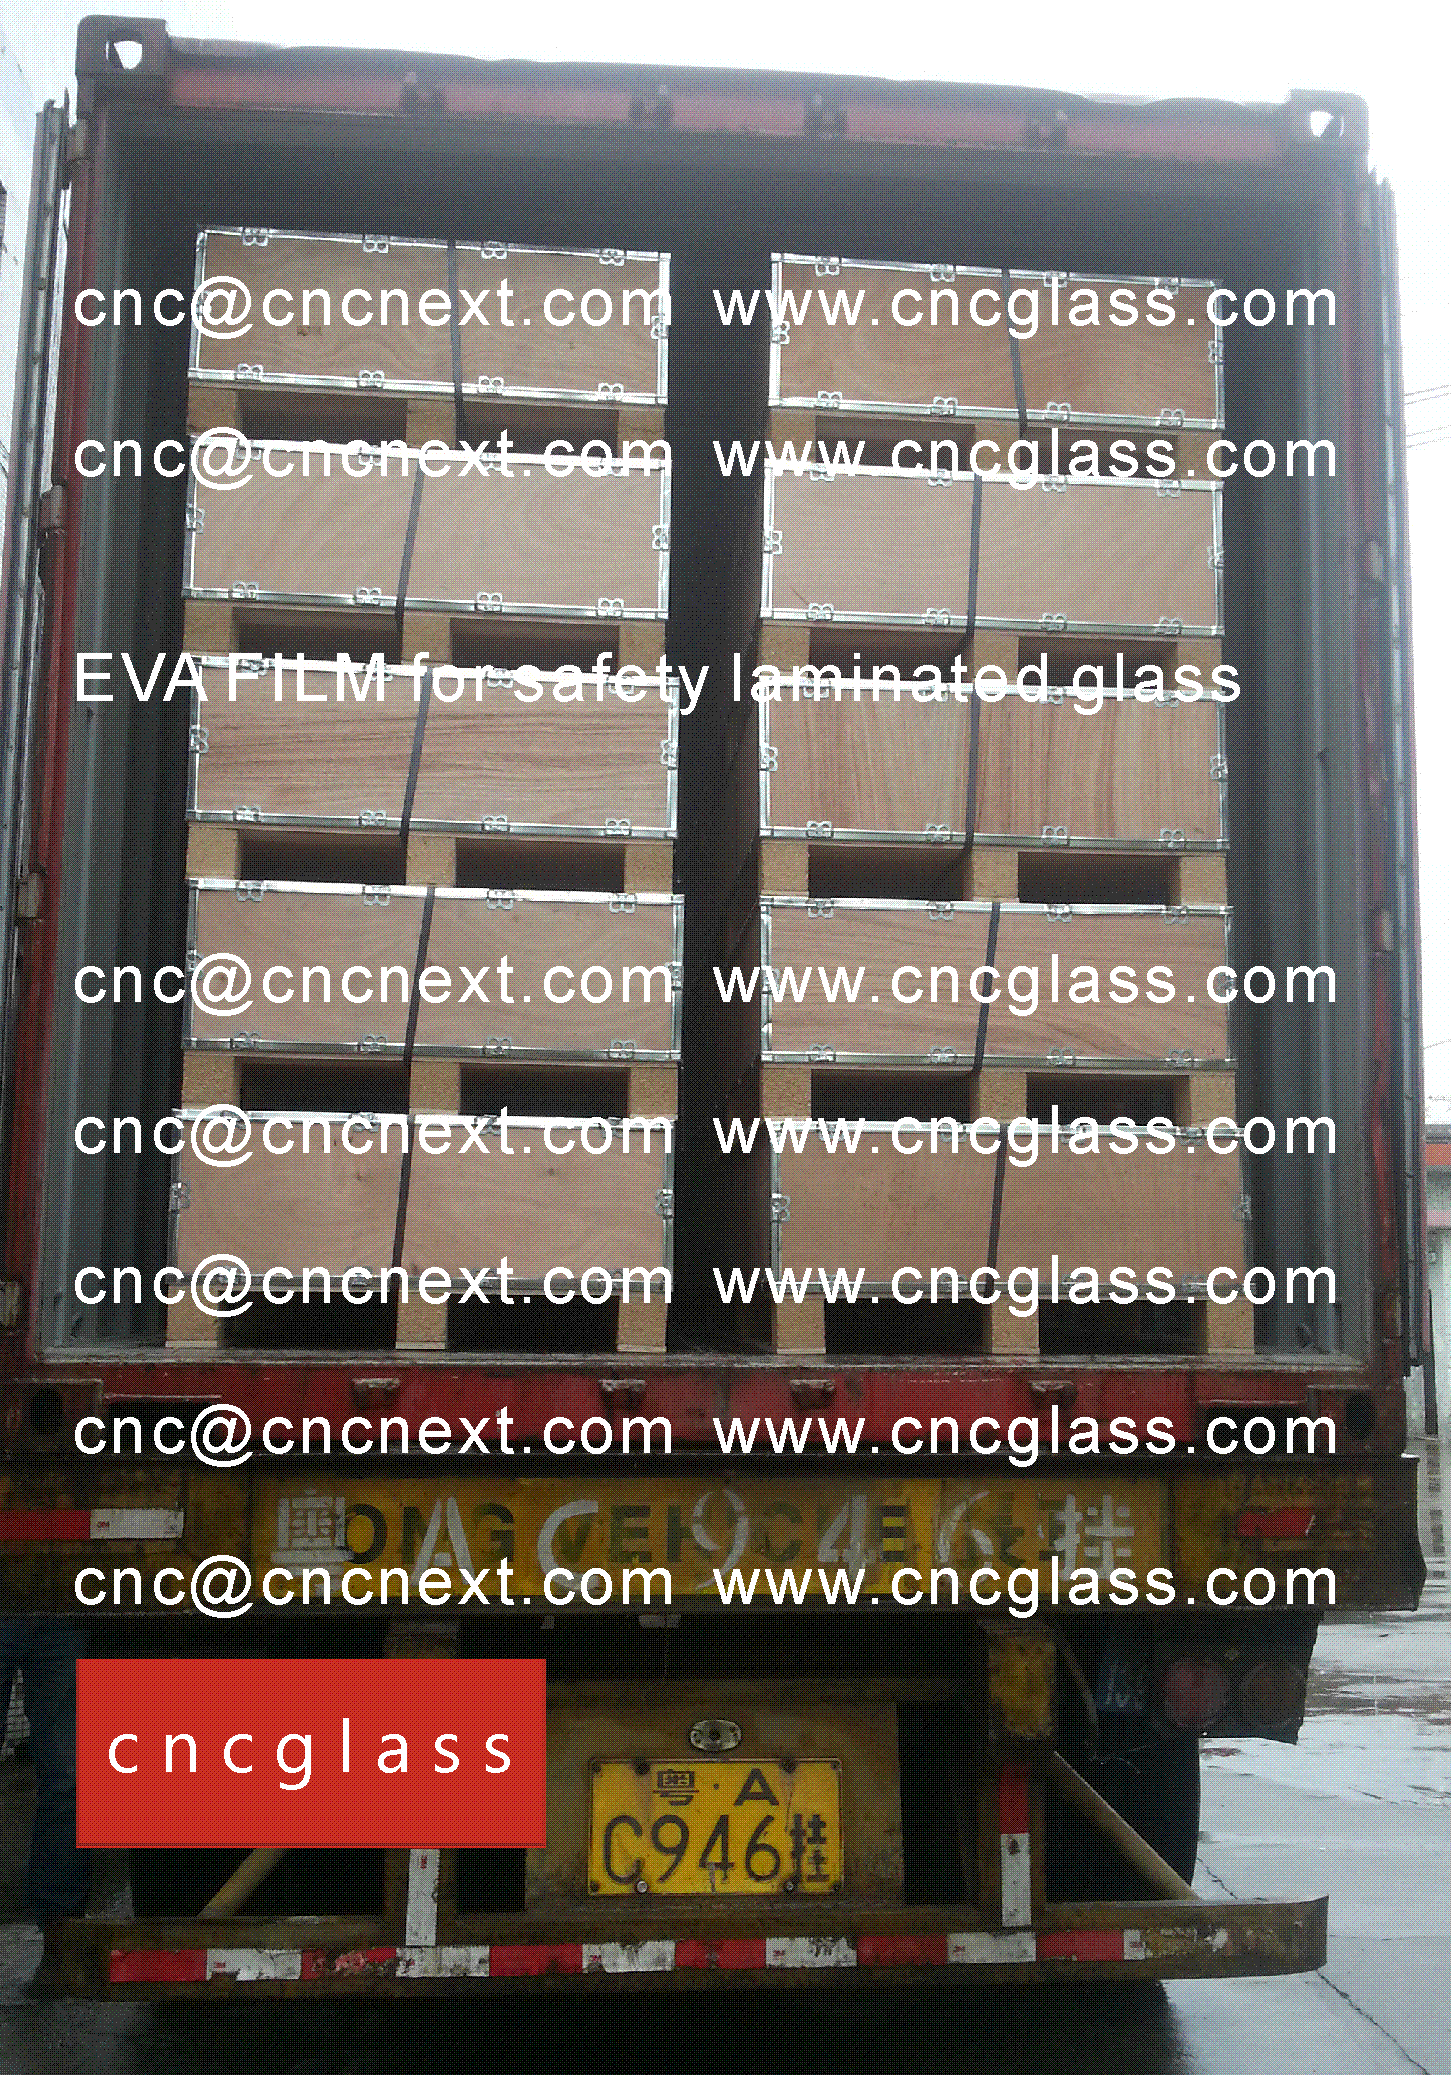 02 EVALAM INATING FILM LOADING CONTAINER (SAFETY LAMINATED GLASS)